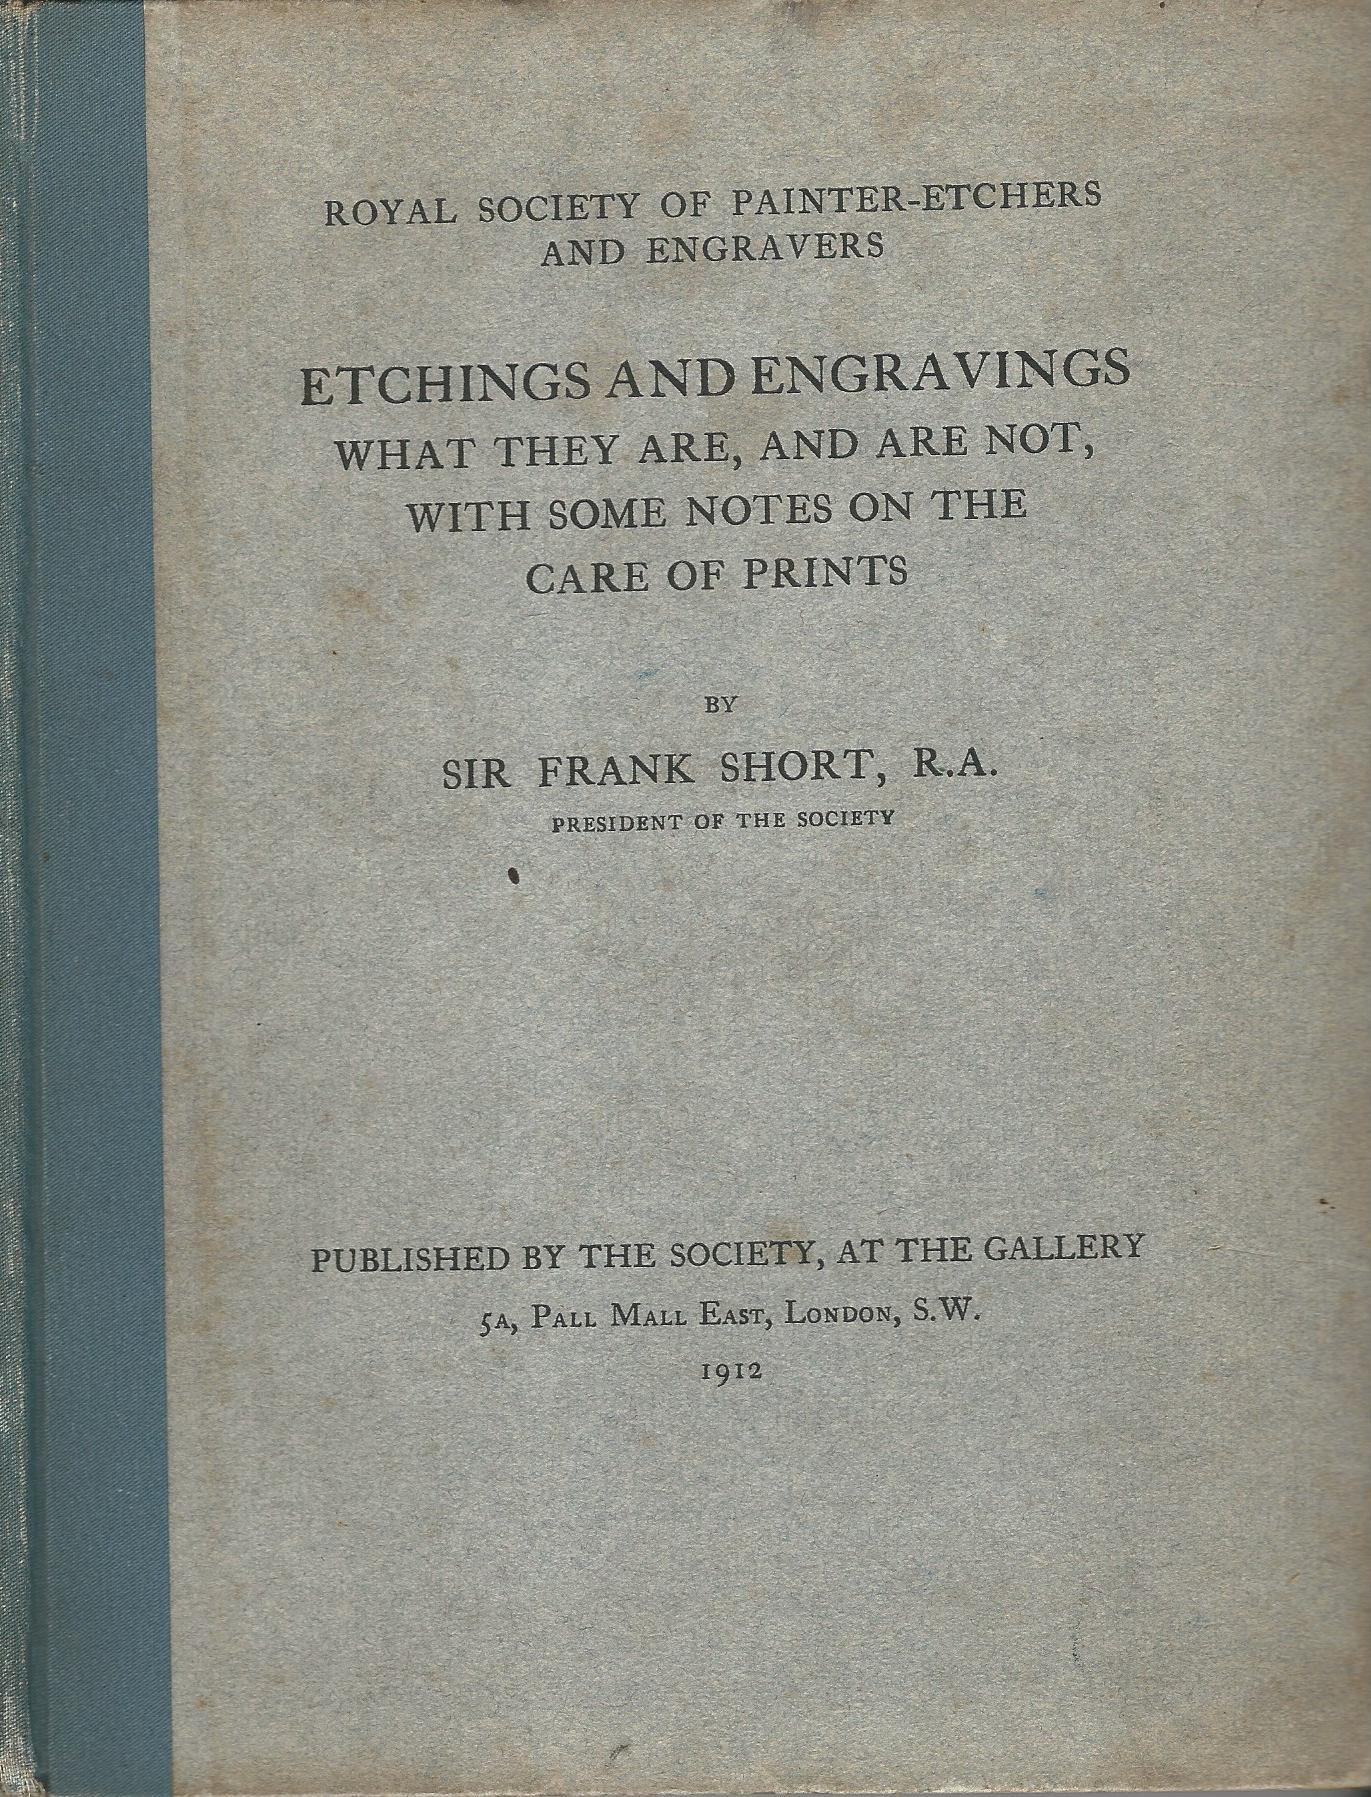 Image for Etchings and Engravings, What They Are, and Are Not, with Some Notes on the Care of Prints.